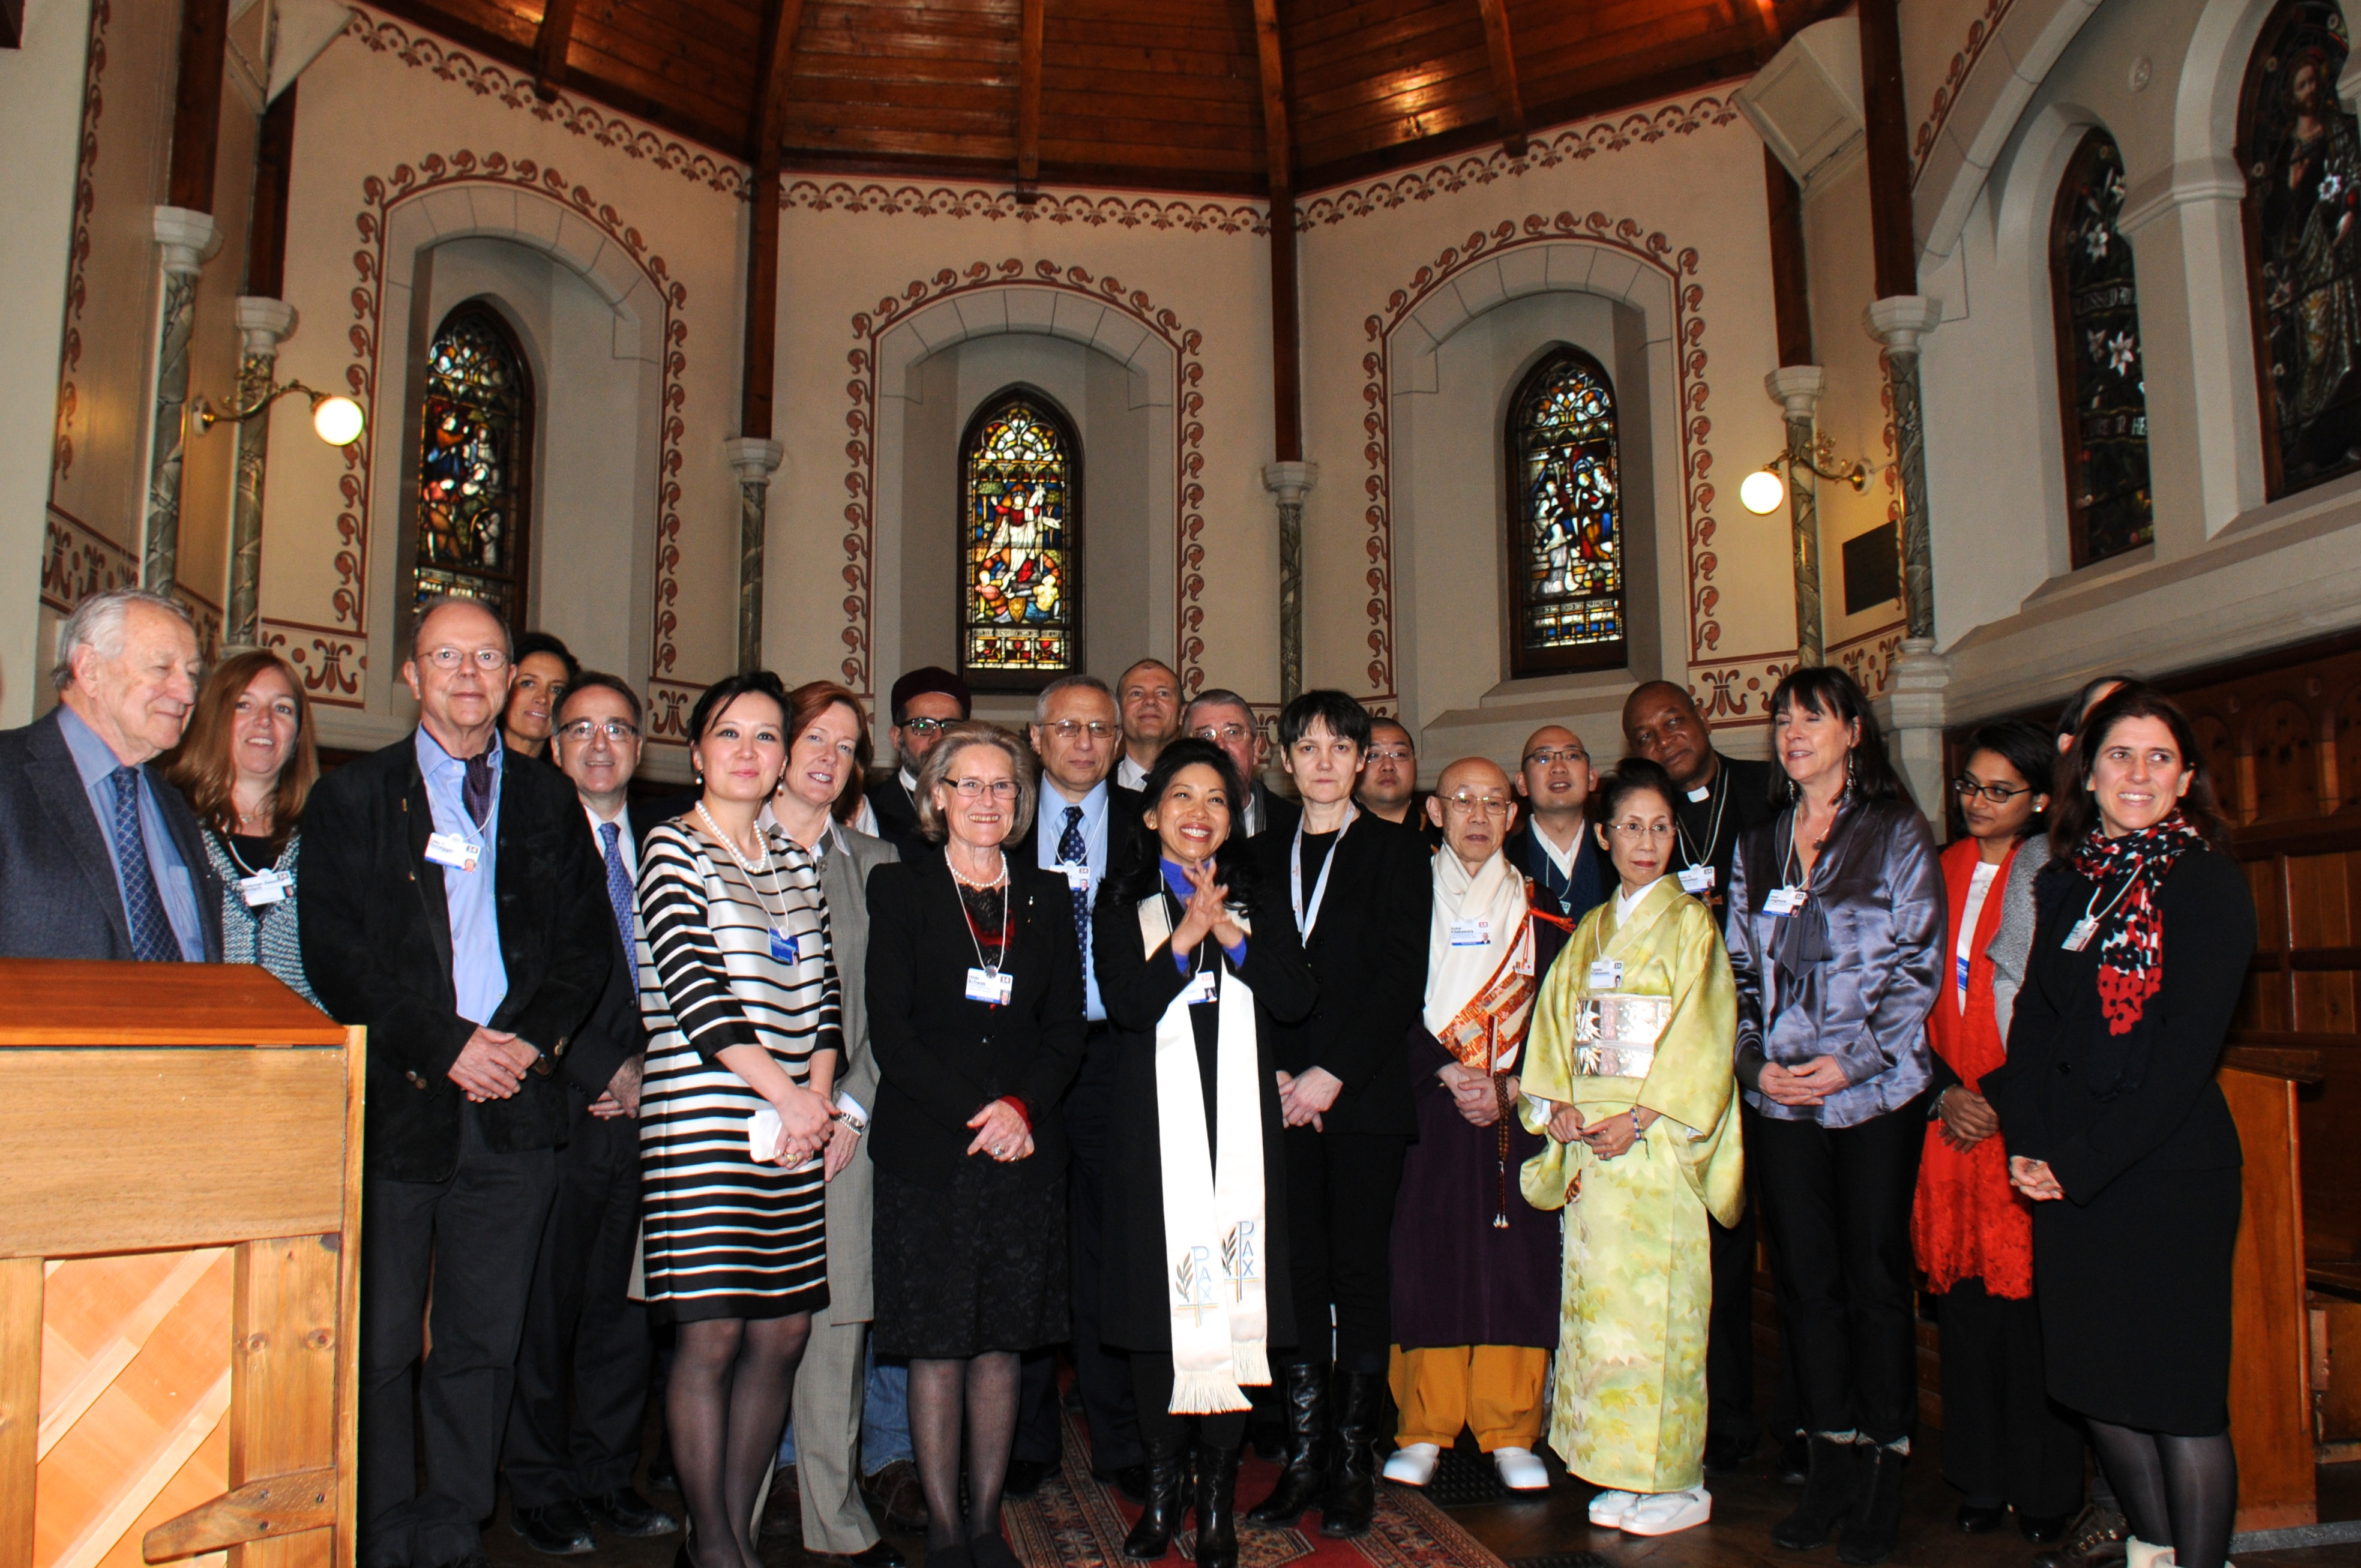 Gathering of Religious Leaders with Hilde Schwab and Karen Tse